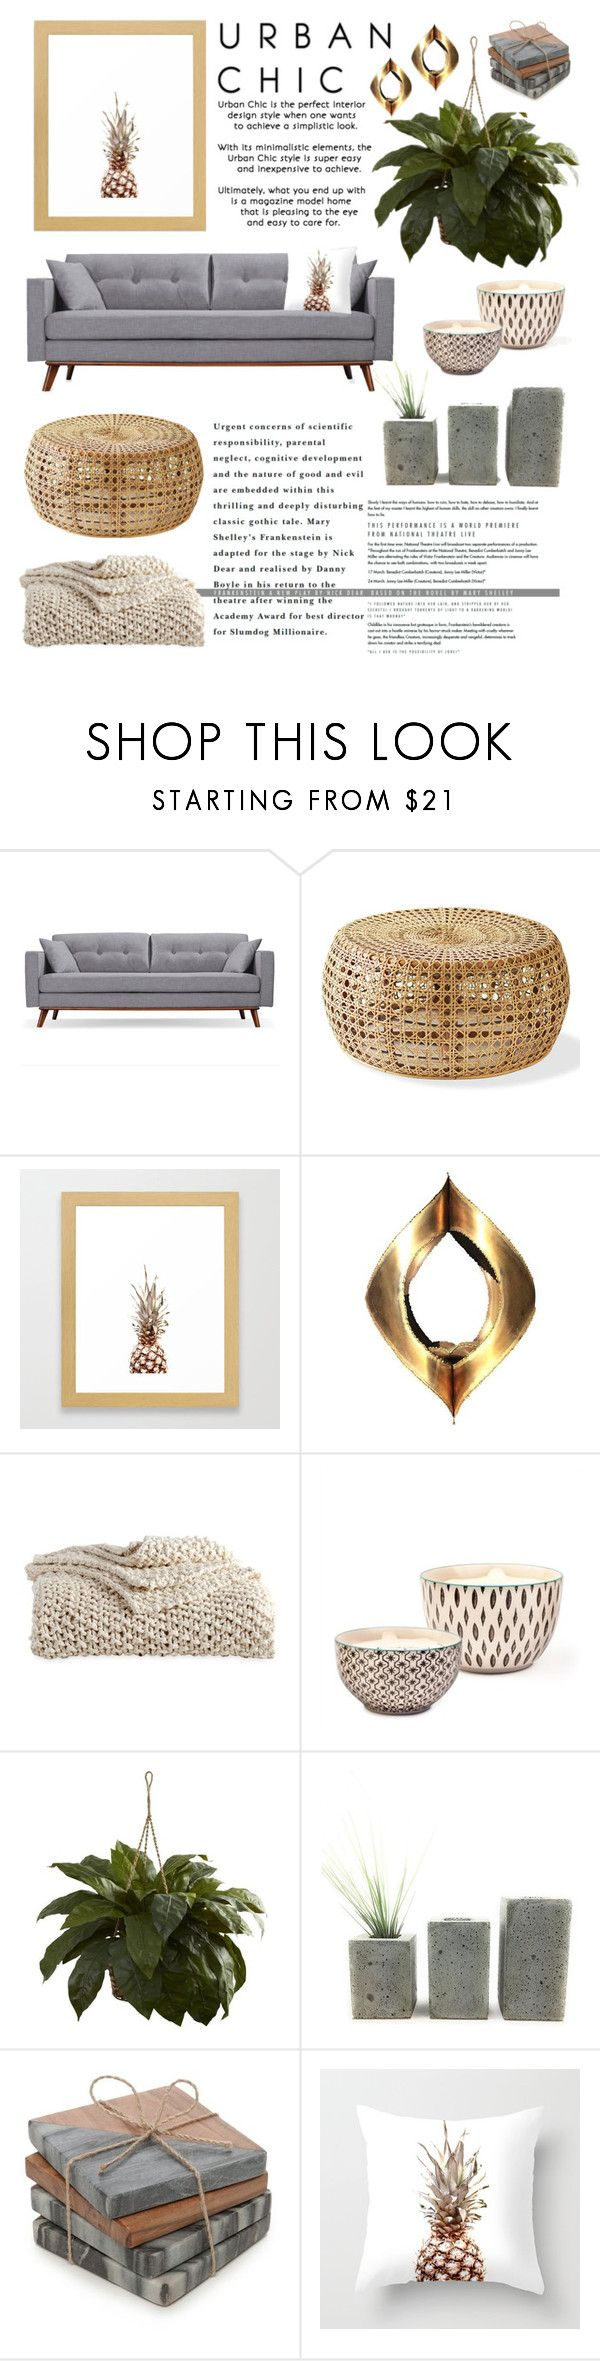 Living Room Urban Chic by by-jwp on Polyvore featuring interior, interiors, interior design, home, home decor, interior decorating, DKNY, Biltmore, Nearly Natural and Bambeco